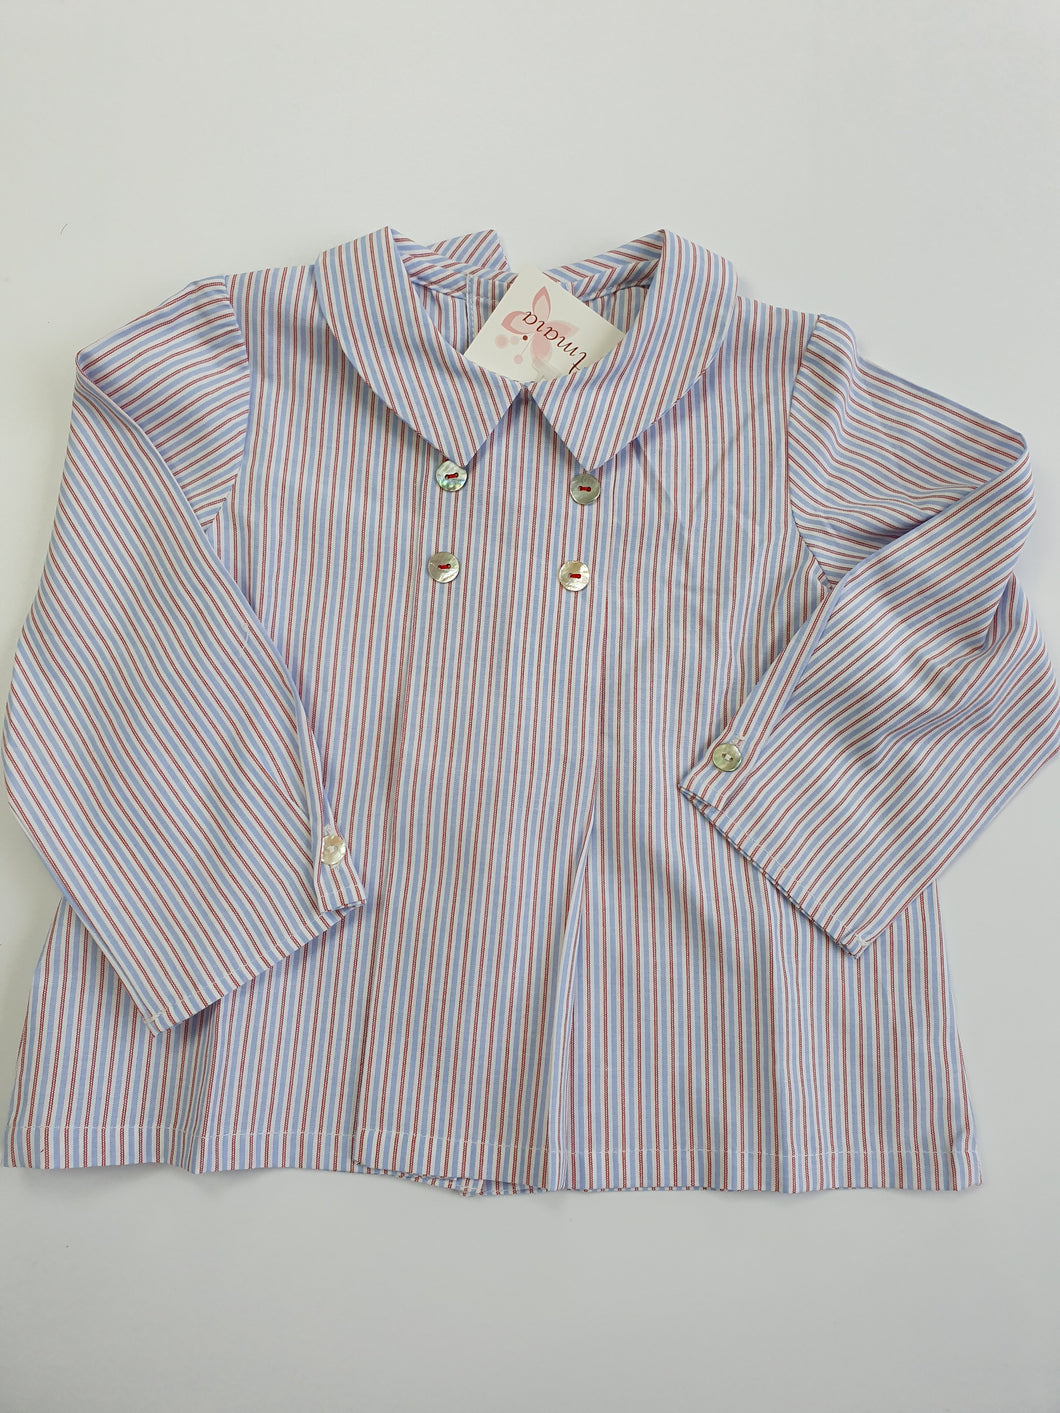 AMAIA outlet baby shirt 12m 6m - FAMILY AFFAIRE